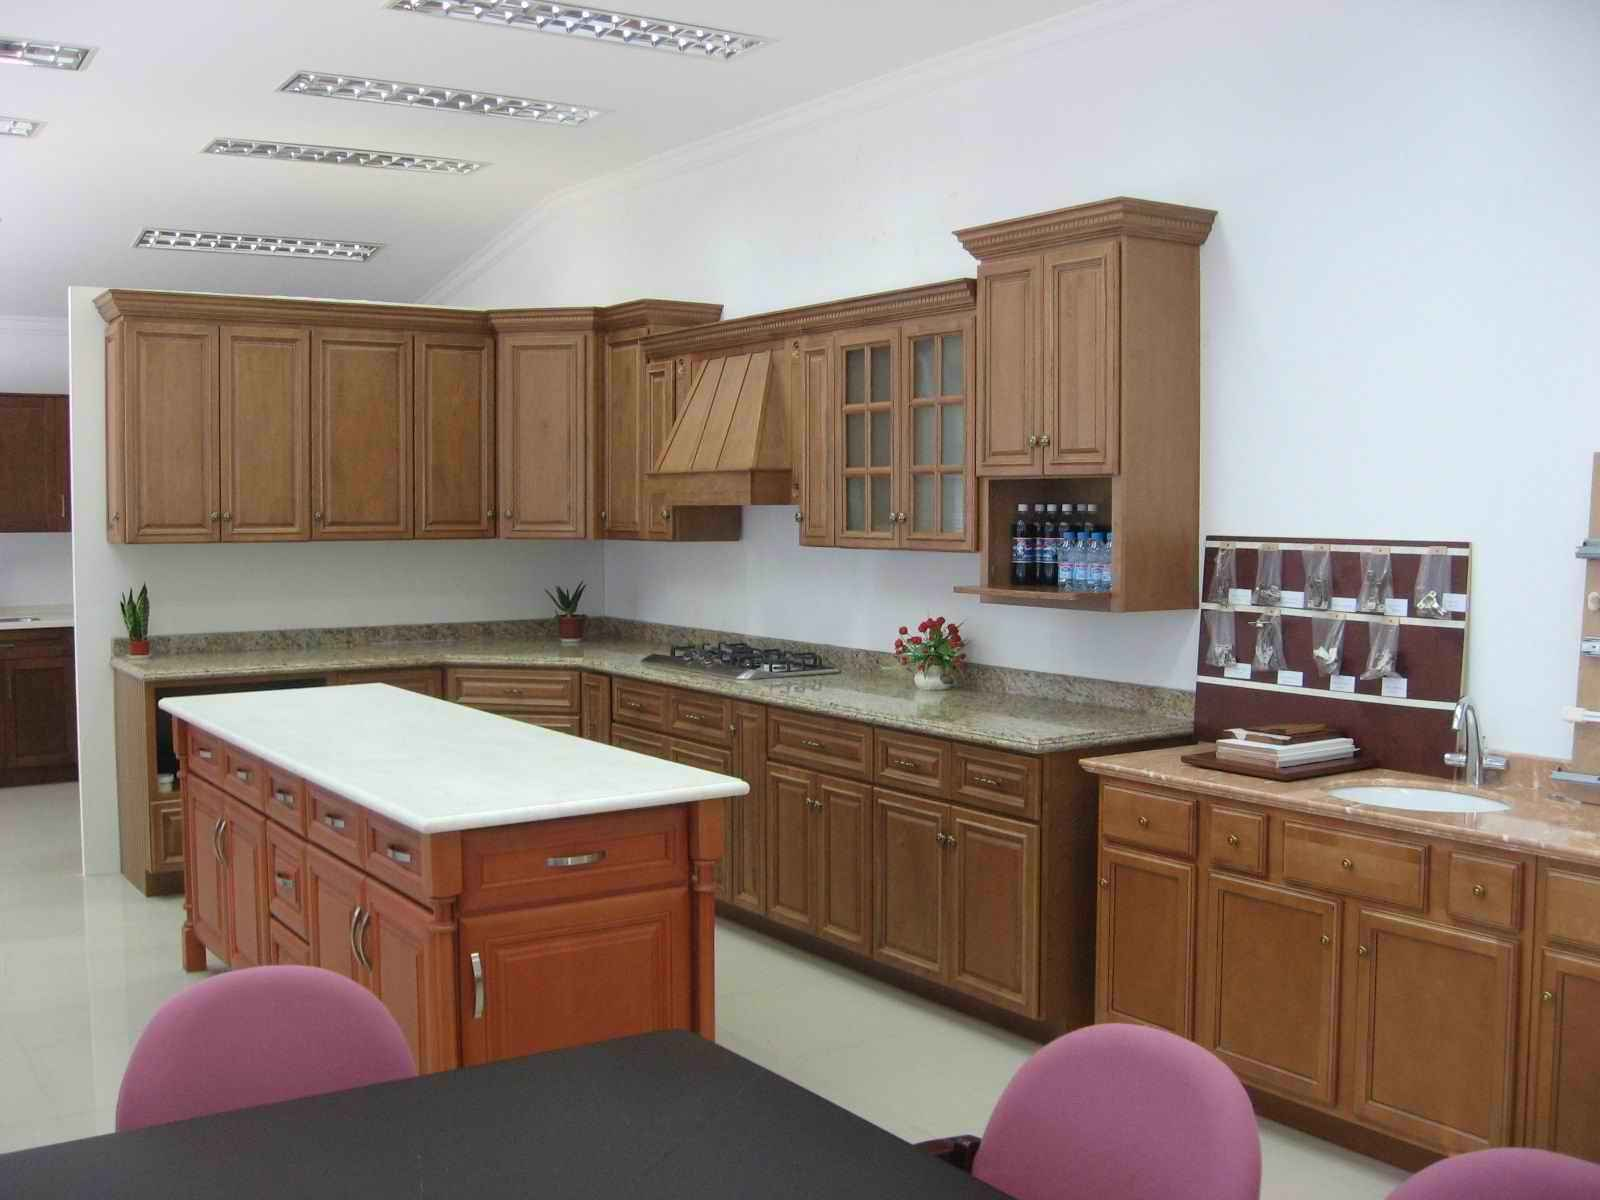 Cheap cabinets for kitchens shopping tips for Cheap kitchen cabinets